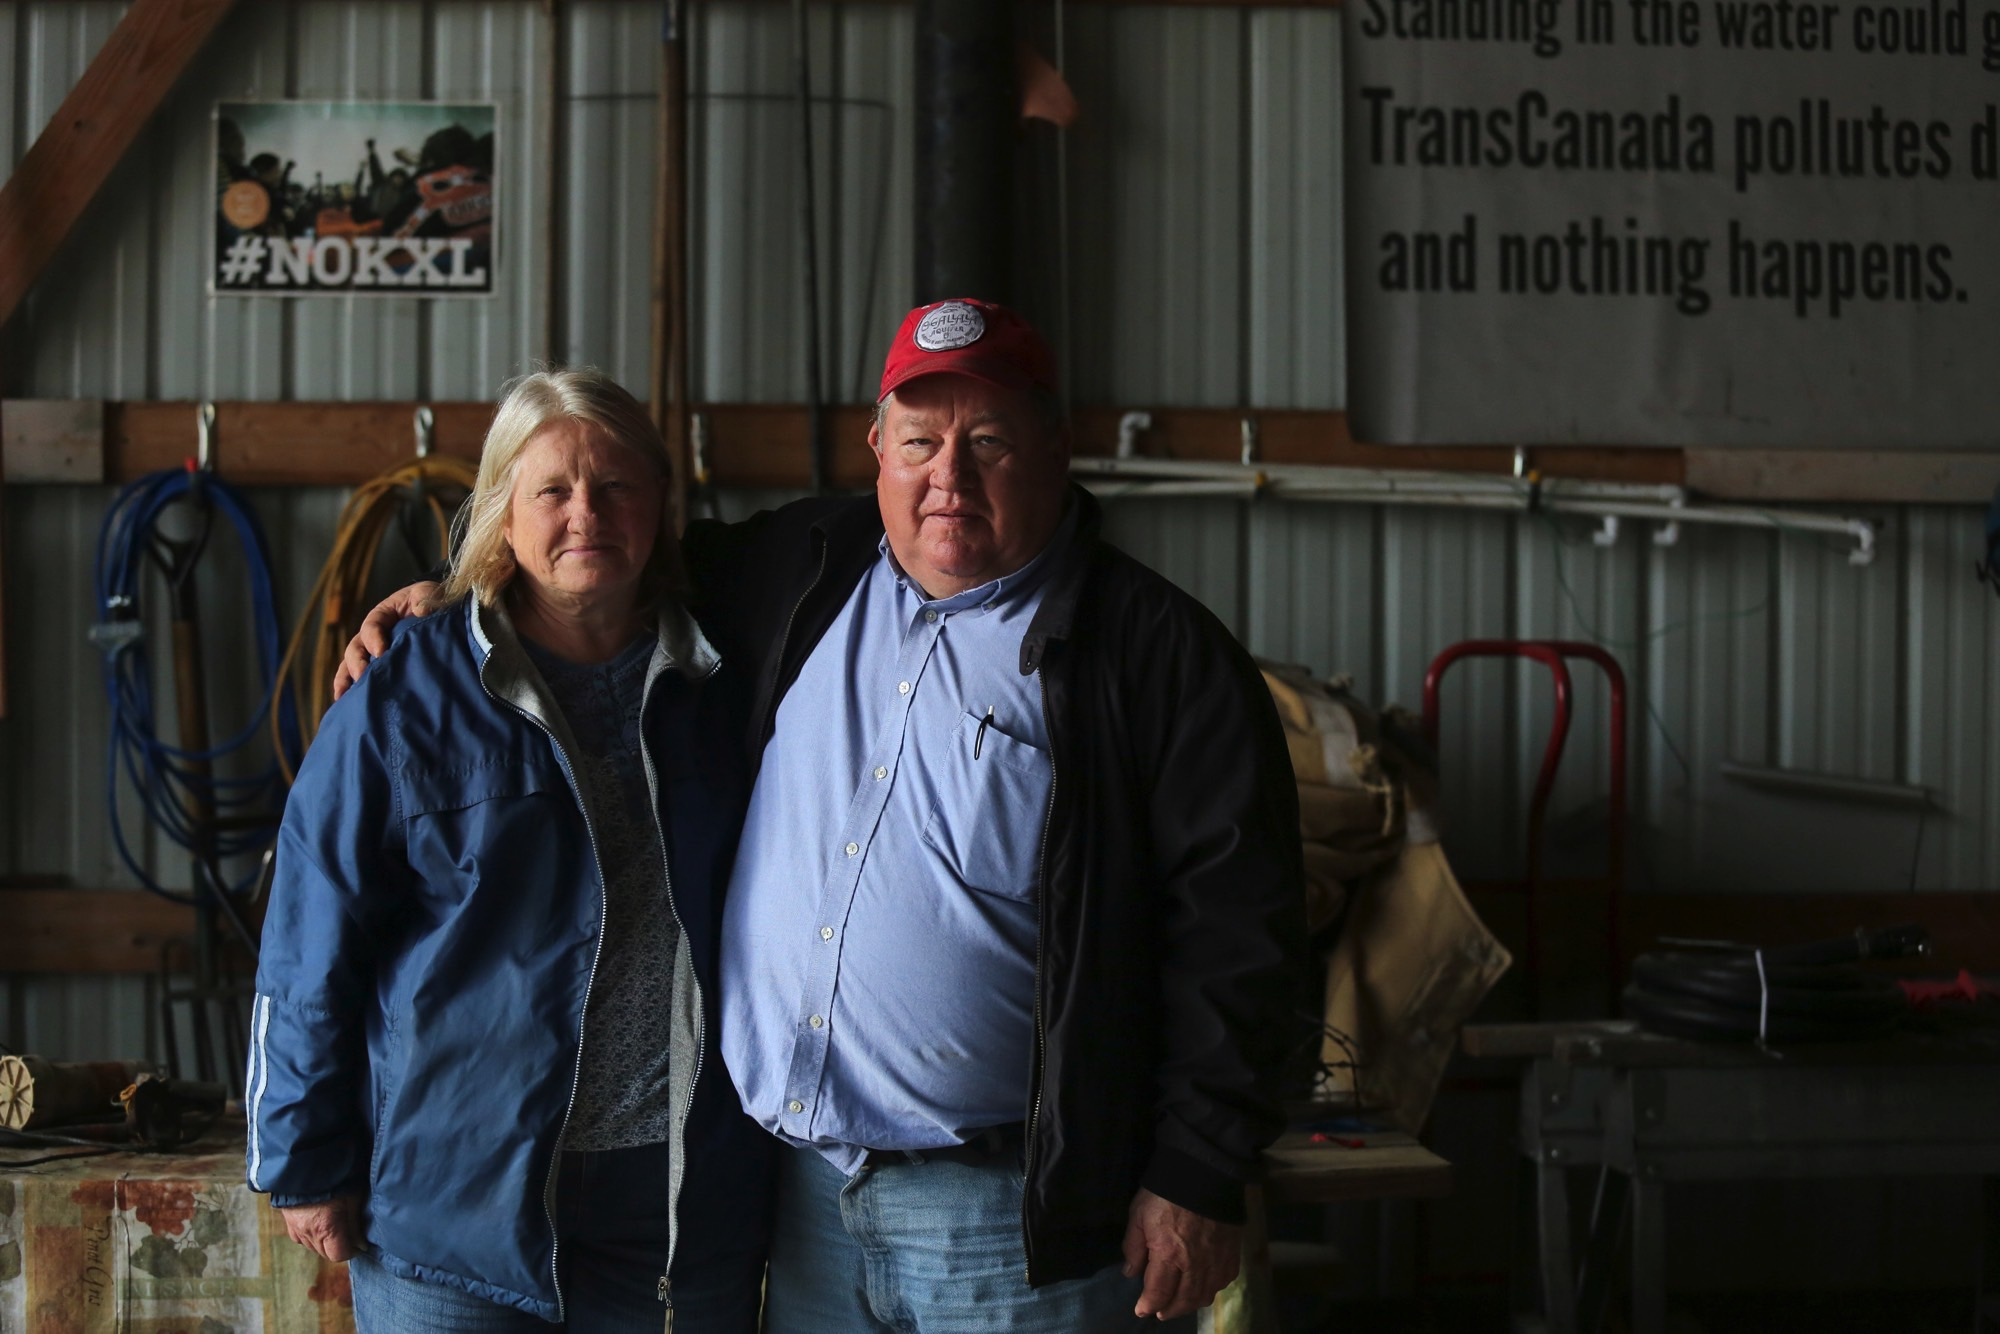 Art and Helen Tanderup are against the proposed Keystone XL Pipeline that would cut through the farm where they live near Neligh, Nebraska, US April 12, 2017. Credit: Reuters/Lane Hickenbottom